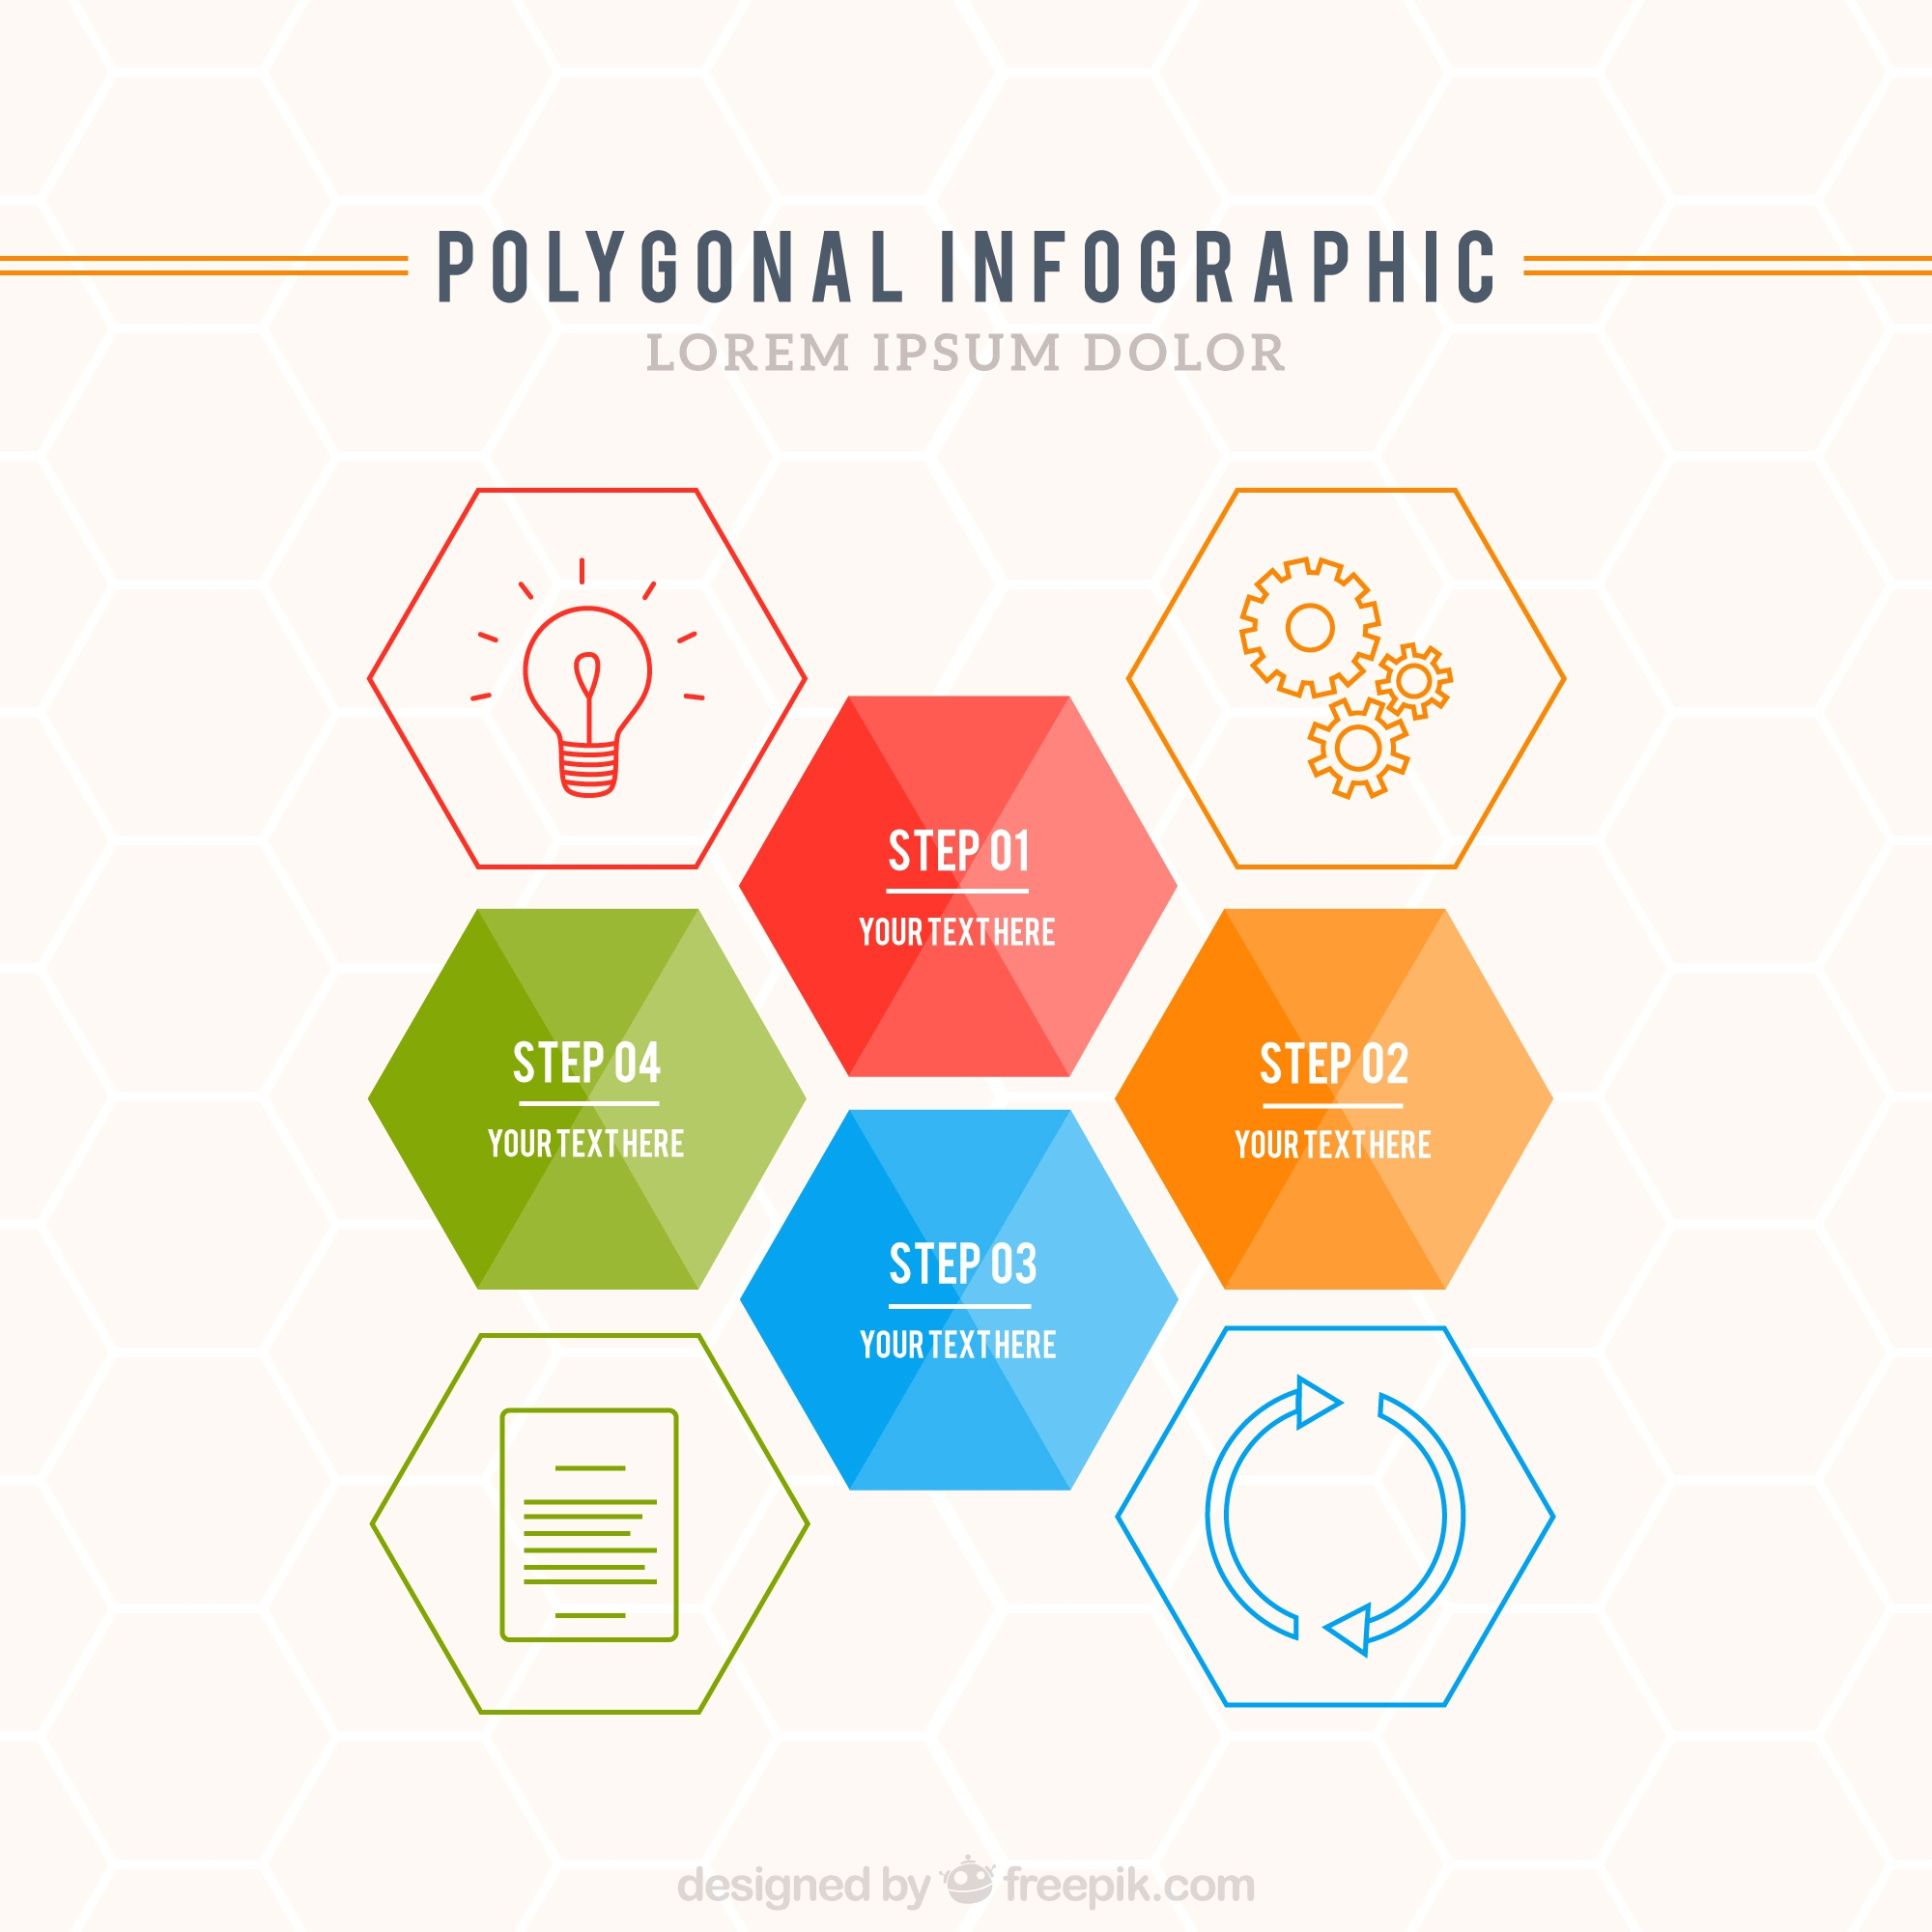 Polygonal infographic template